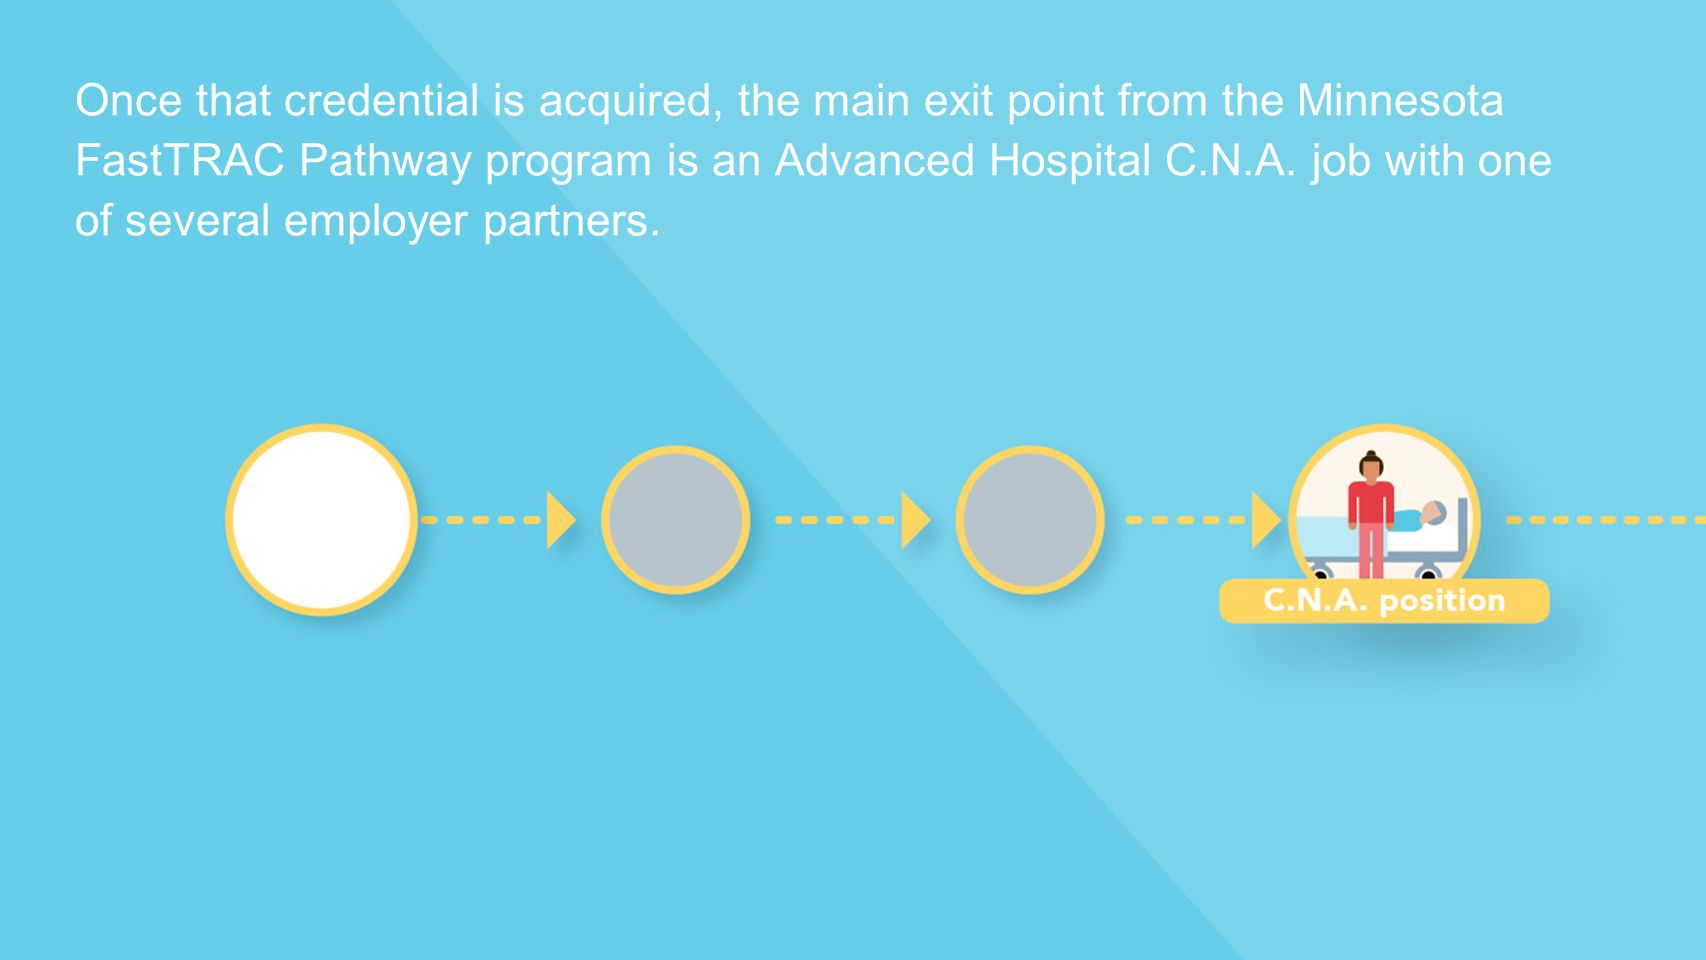 Once that credential is acquired, the main exit point from the Minnesota FastTRAC Pathway program is an Advanced Hospital C.N.A.